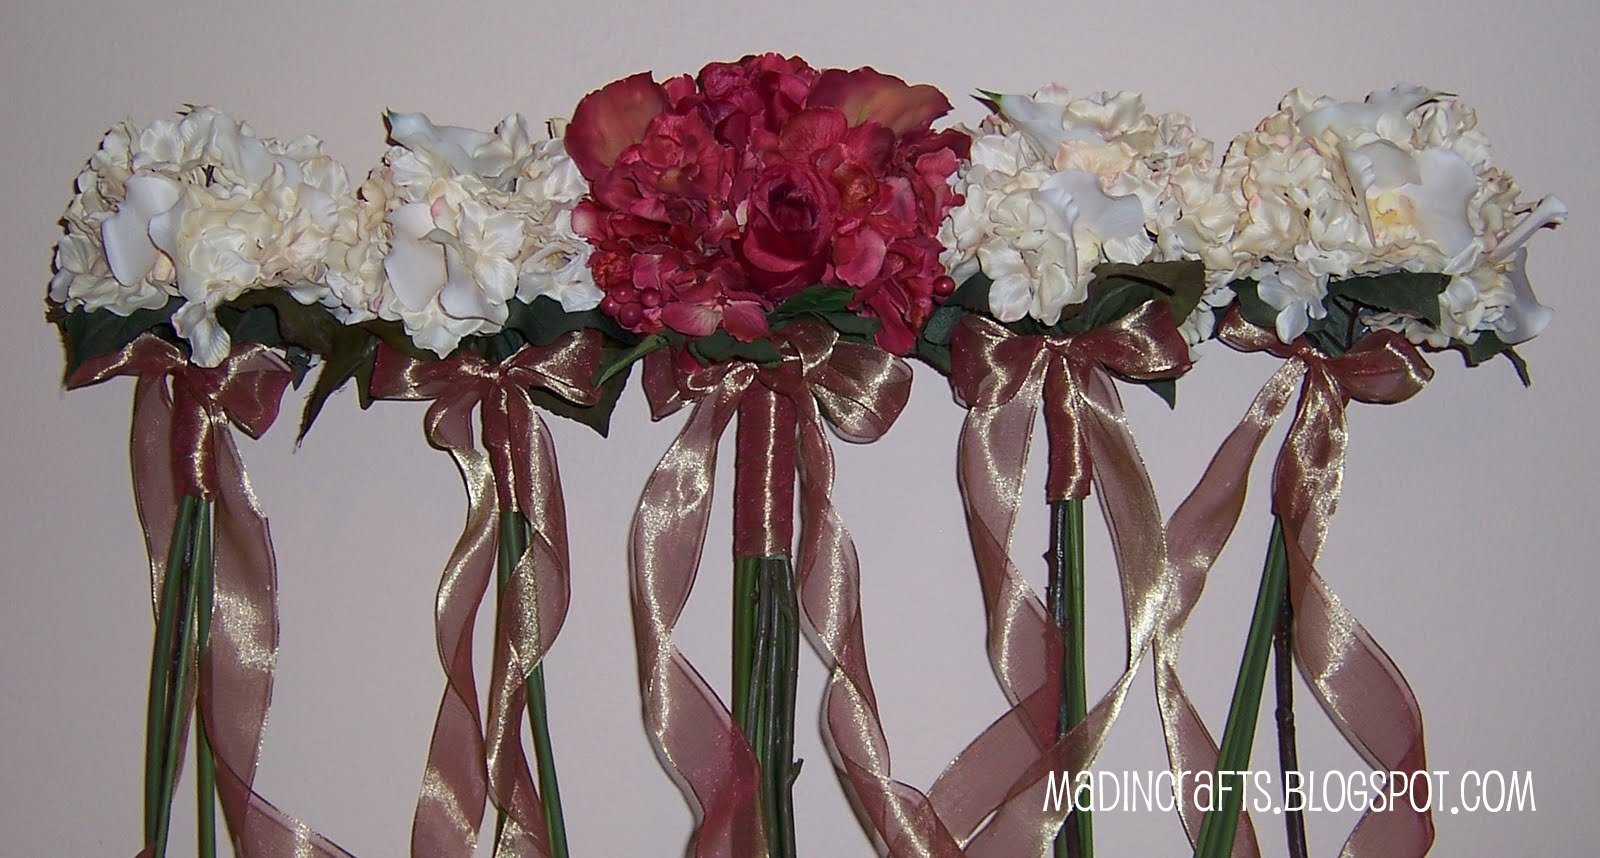 Wedding Crafts: Brides\' and Bridesmaids\' Bouquets - Mad in Crafts